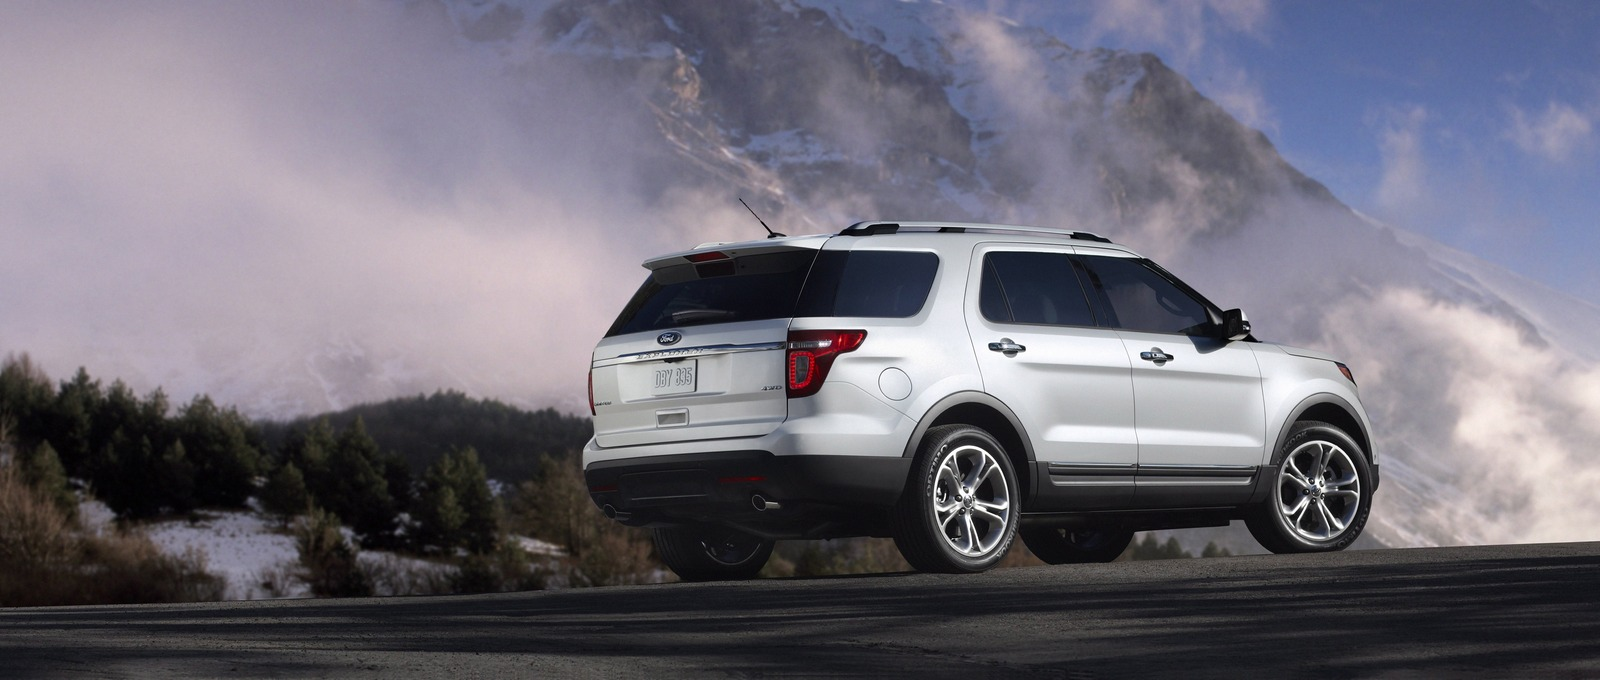 Family Car Guide: SUV Names That Start With \